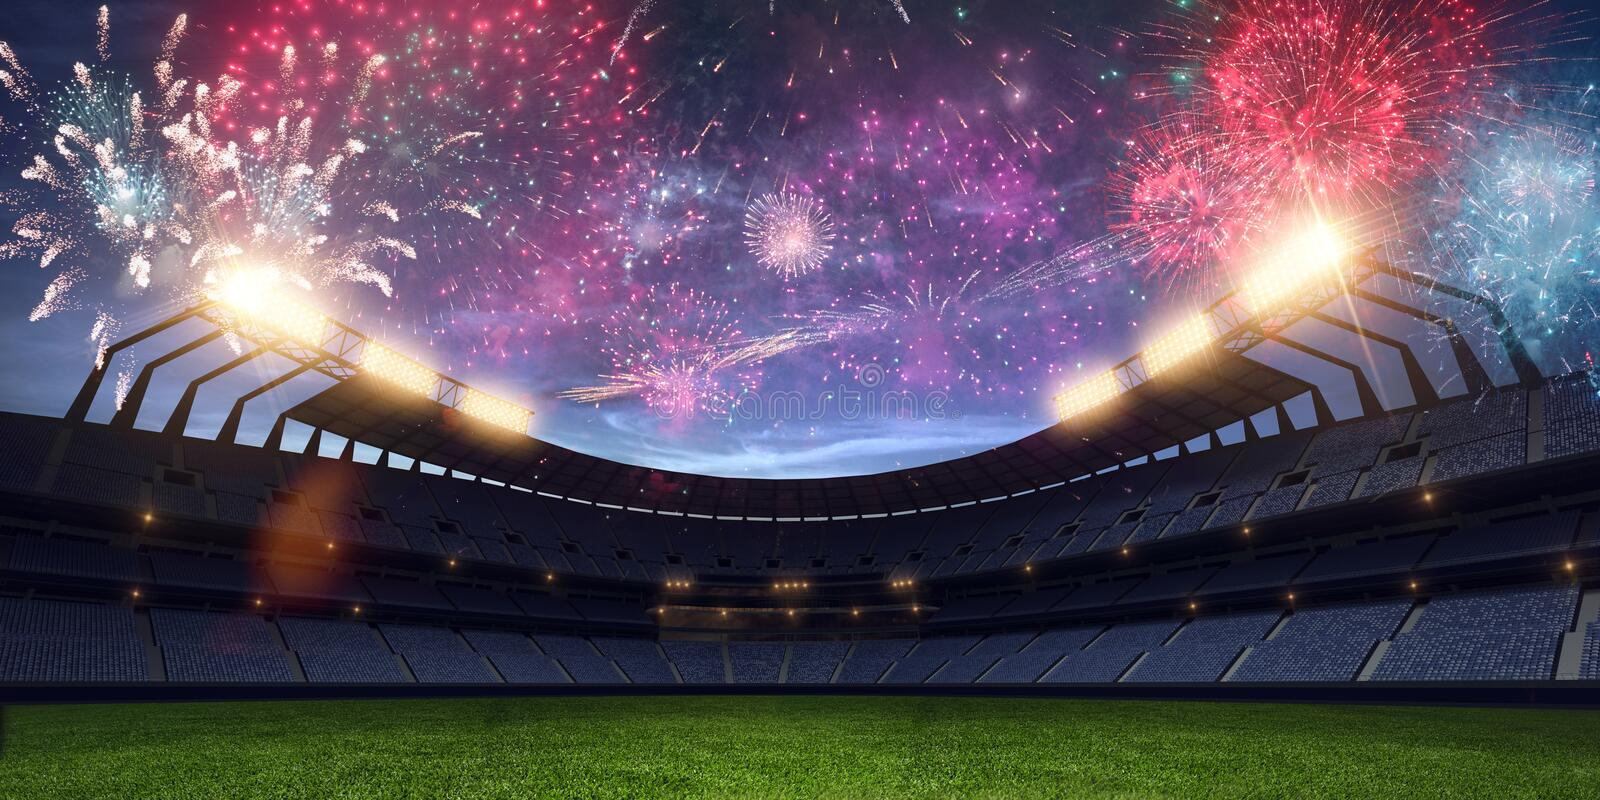 Stadium night without people fireworks 3d render royalty free stock images